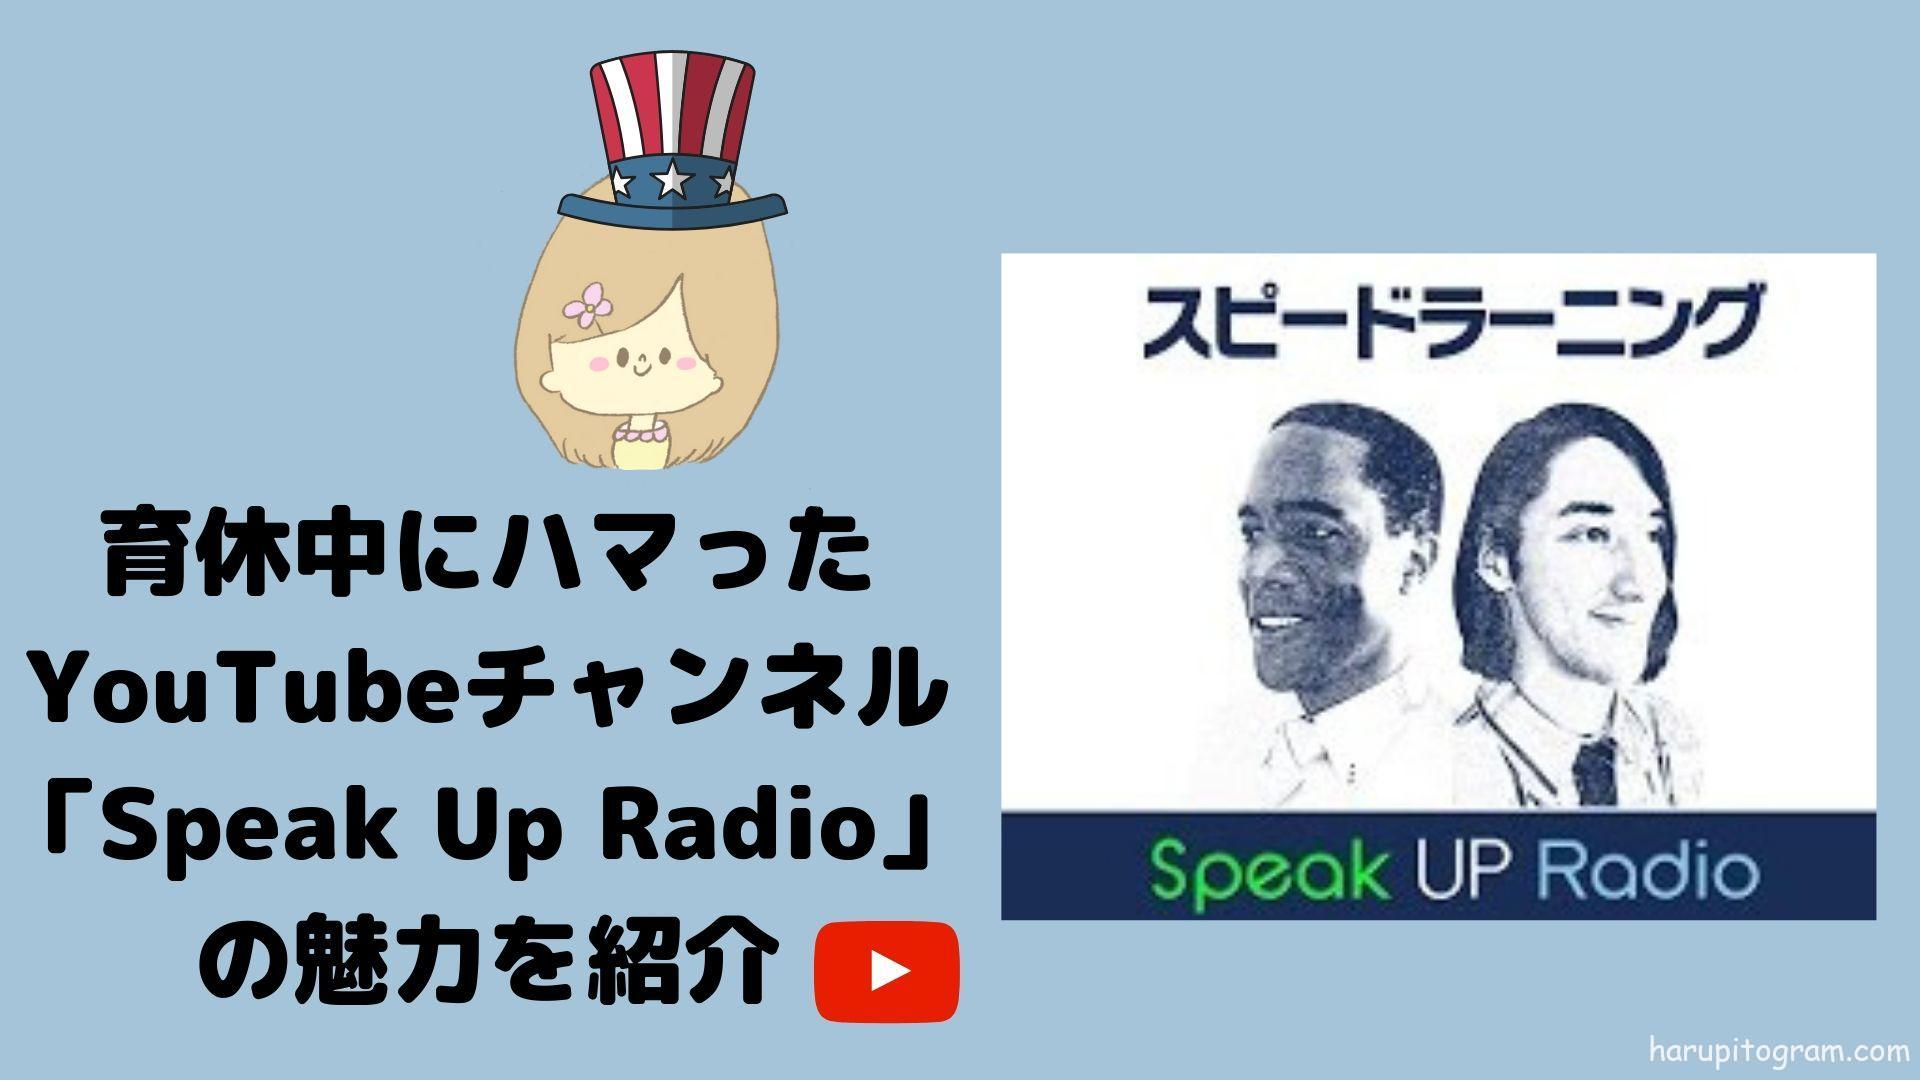 speakupradioの紹介